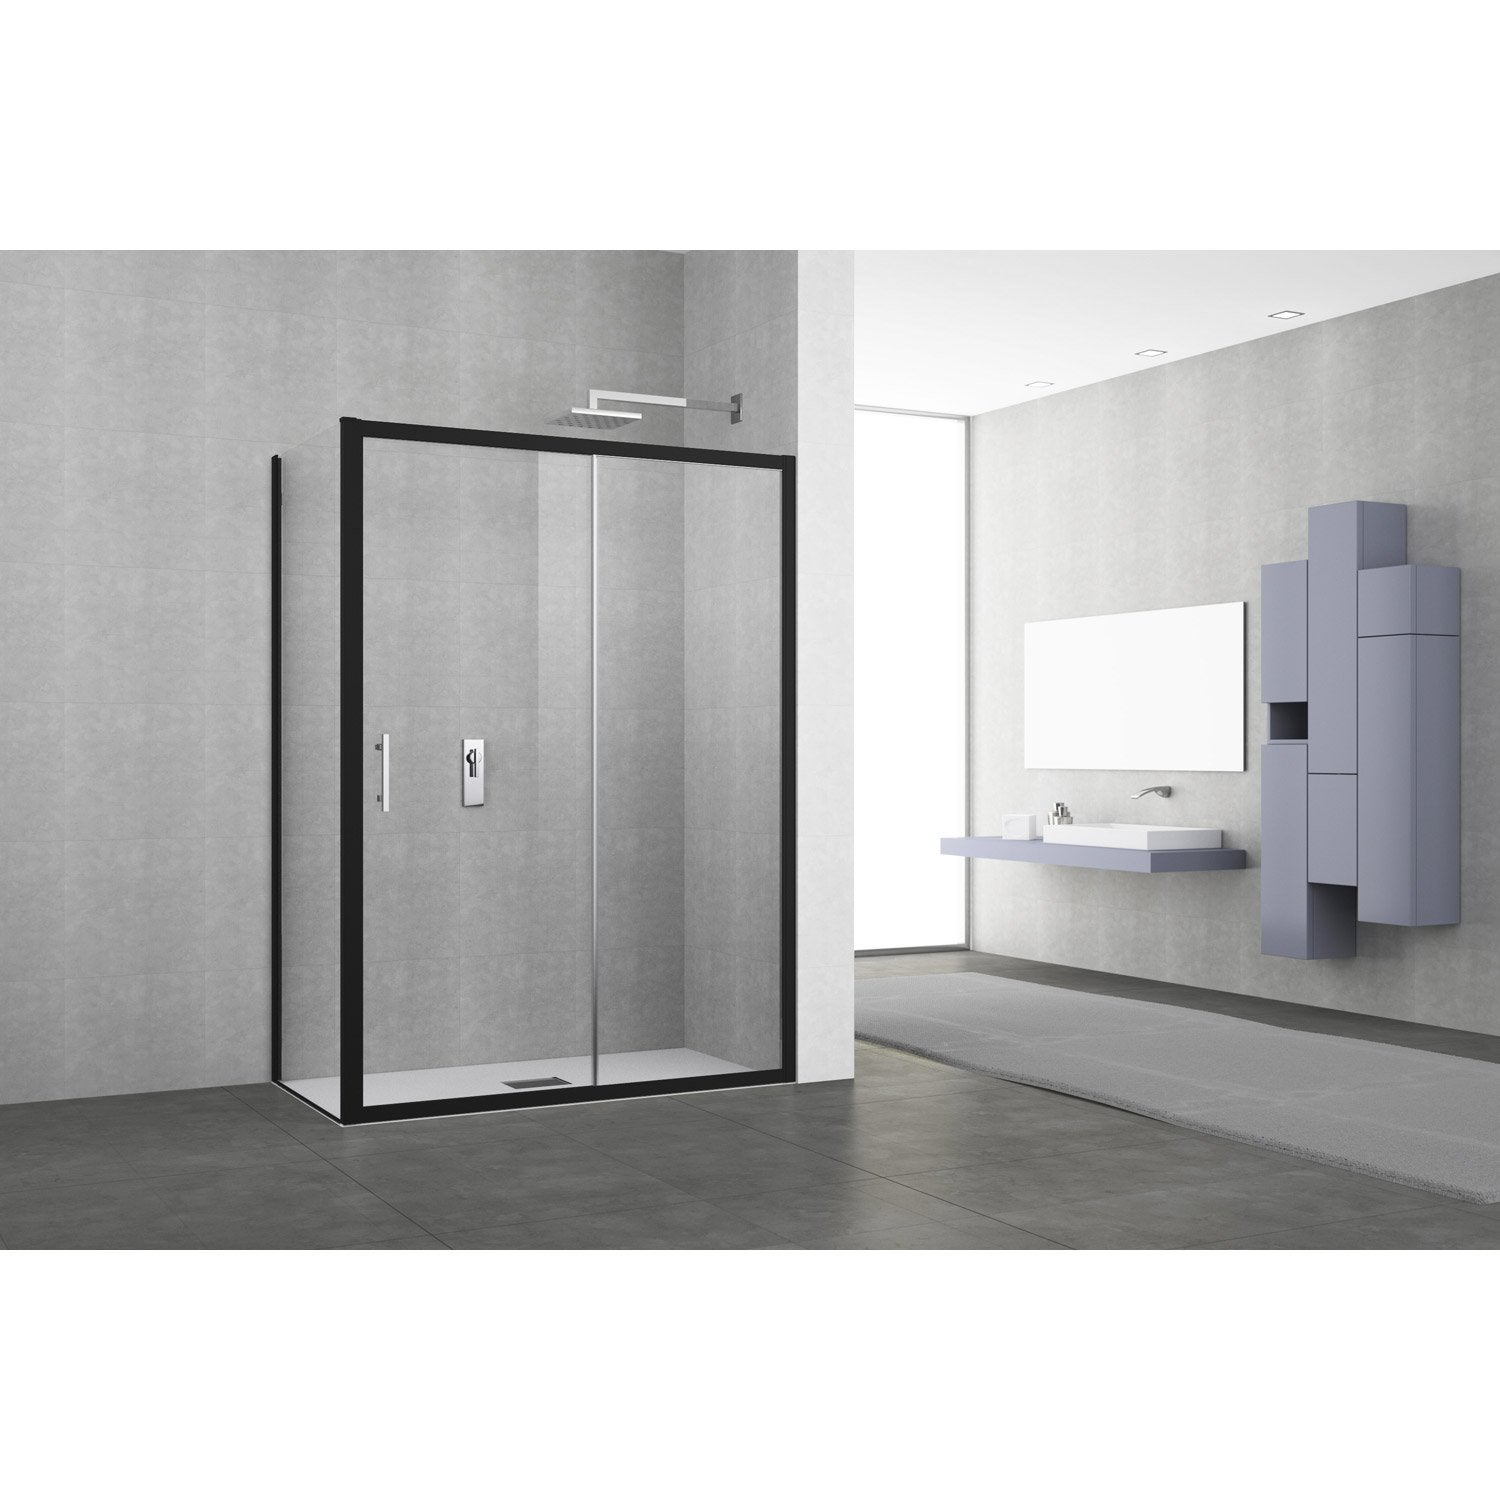 porte de douche coulissante 116 122 cm profil noir elyt 2 pnx leroy merlin. Black Bedroom Furniture Sets. Home Design Ideas